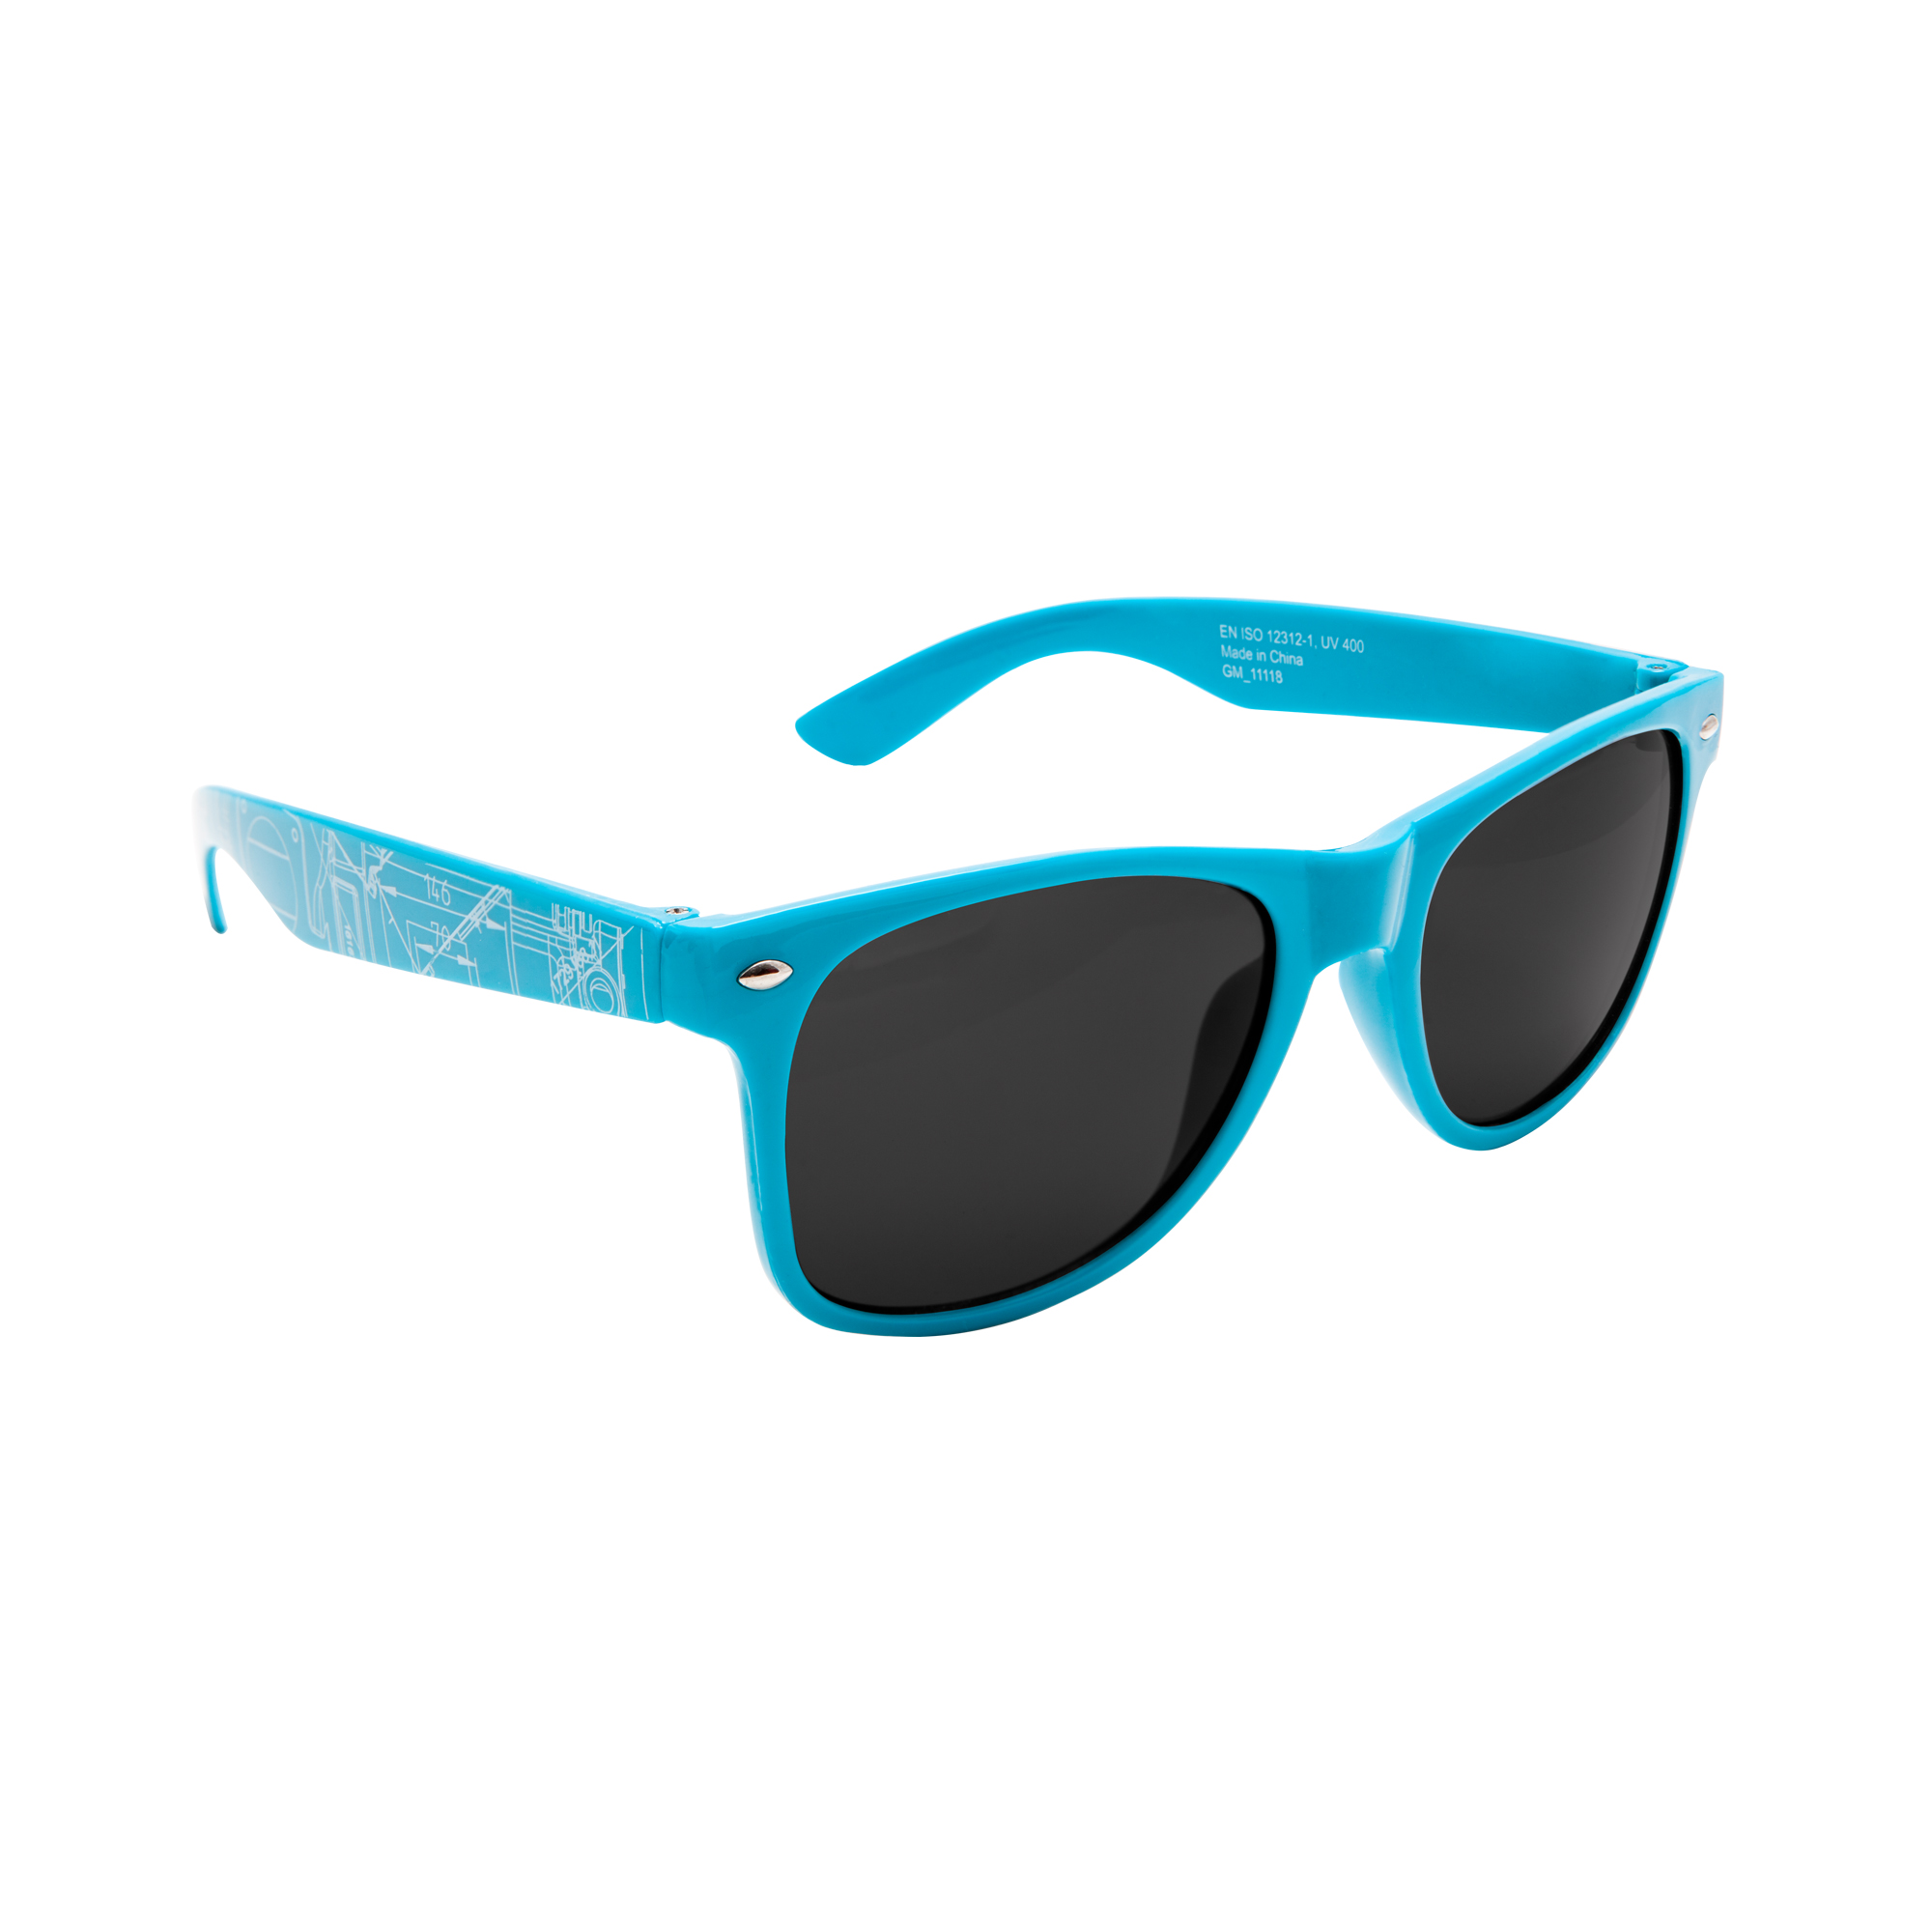 Classical sunglasses with new BluePrint design. These sunglasses are Compliant with UV Standard EN ISO 12312-1, UV 400 and passed stringent lens ball drop tests. PC plastic.